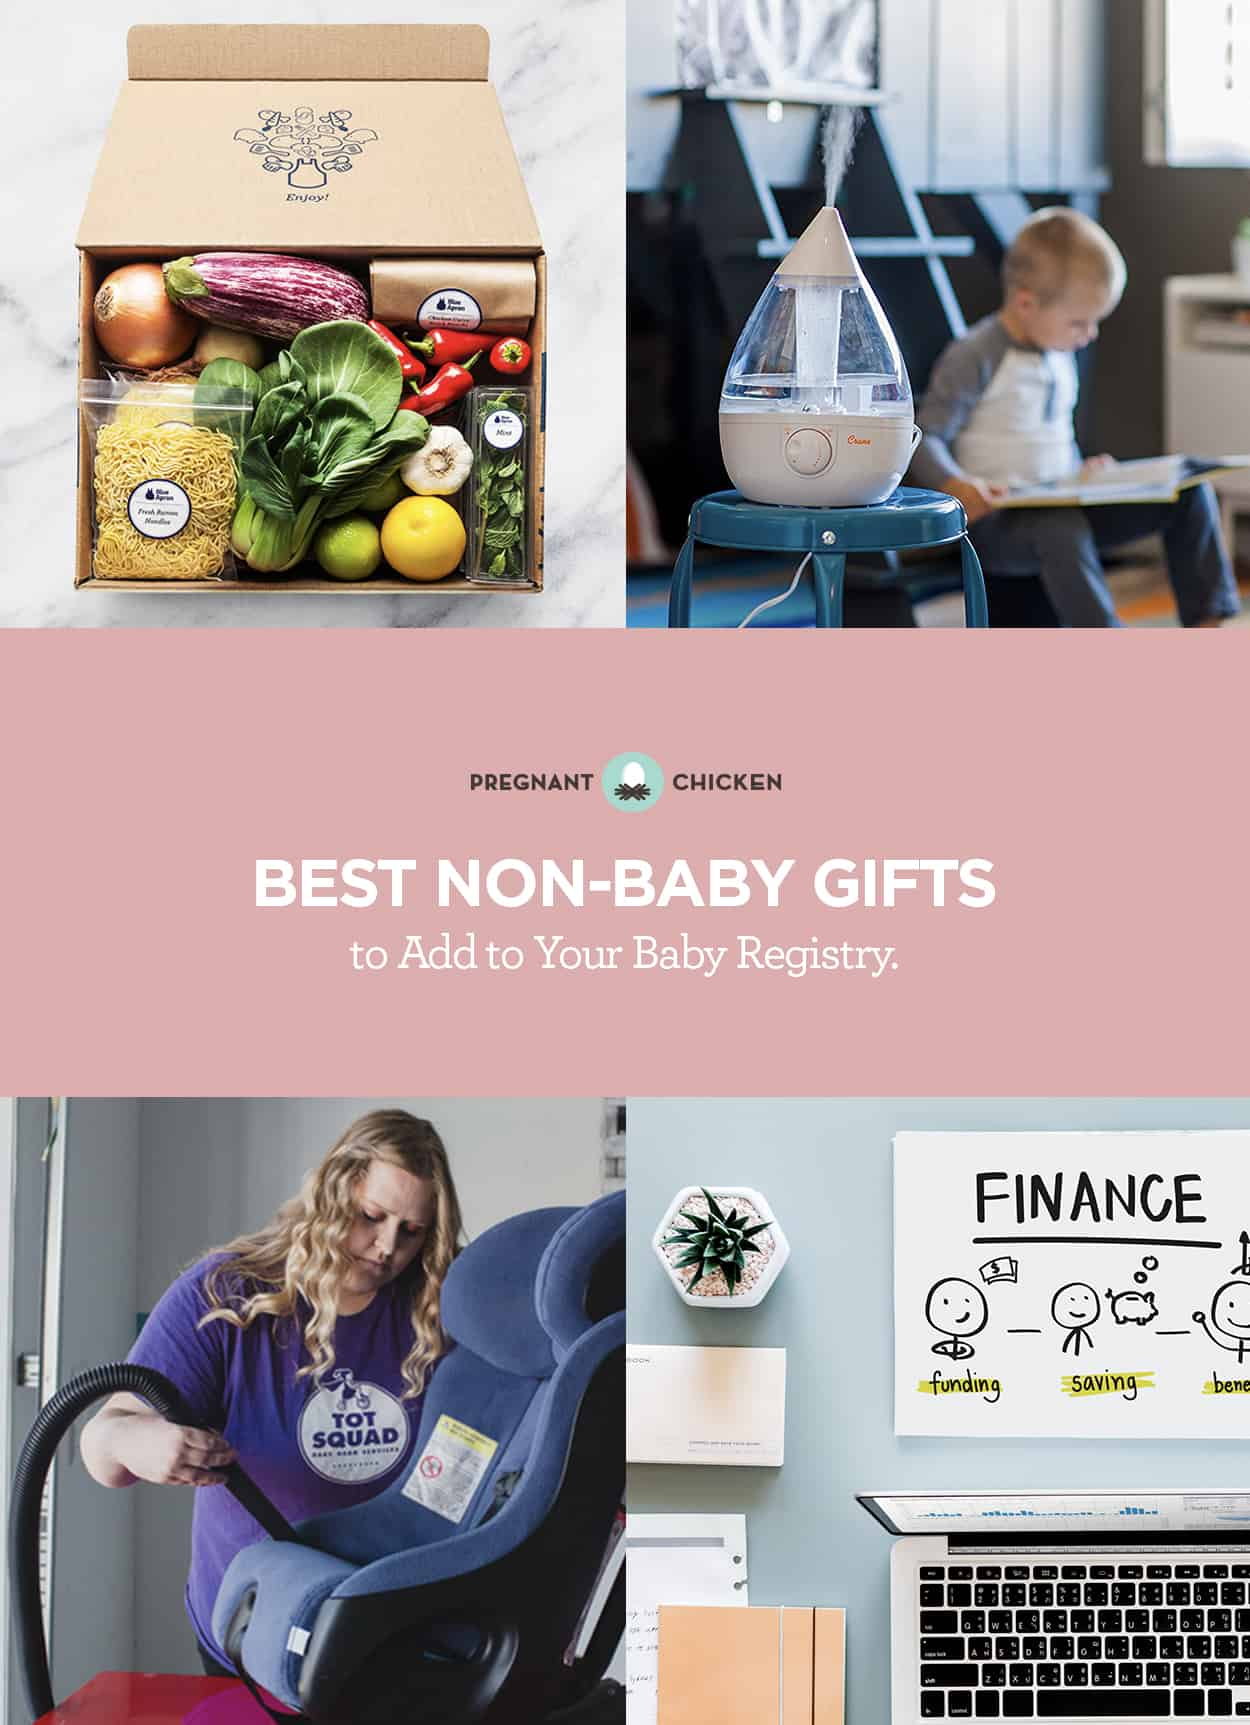 Whether it's your baby registry, or a baby gift for someone else, here are some unique non-traditional gifts that are and handy when you have a baby. #babygifts #babyshower #newmomgift #babyprep #babyregistry #uniquebabygift